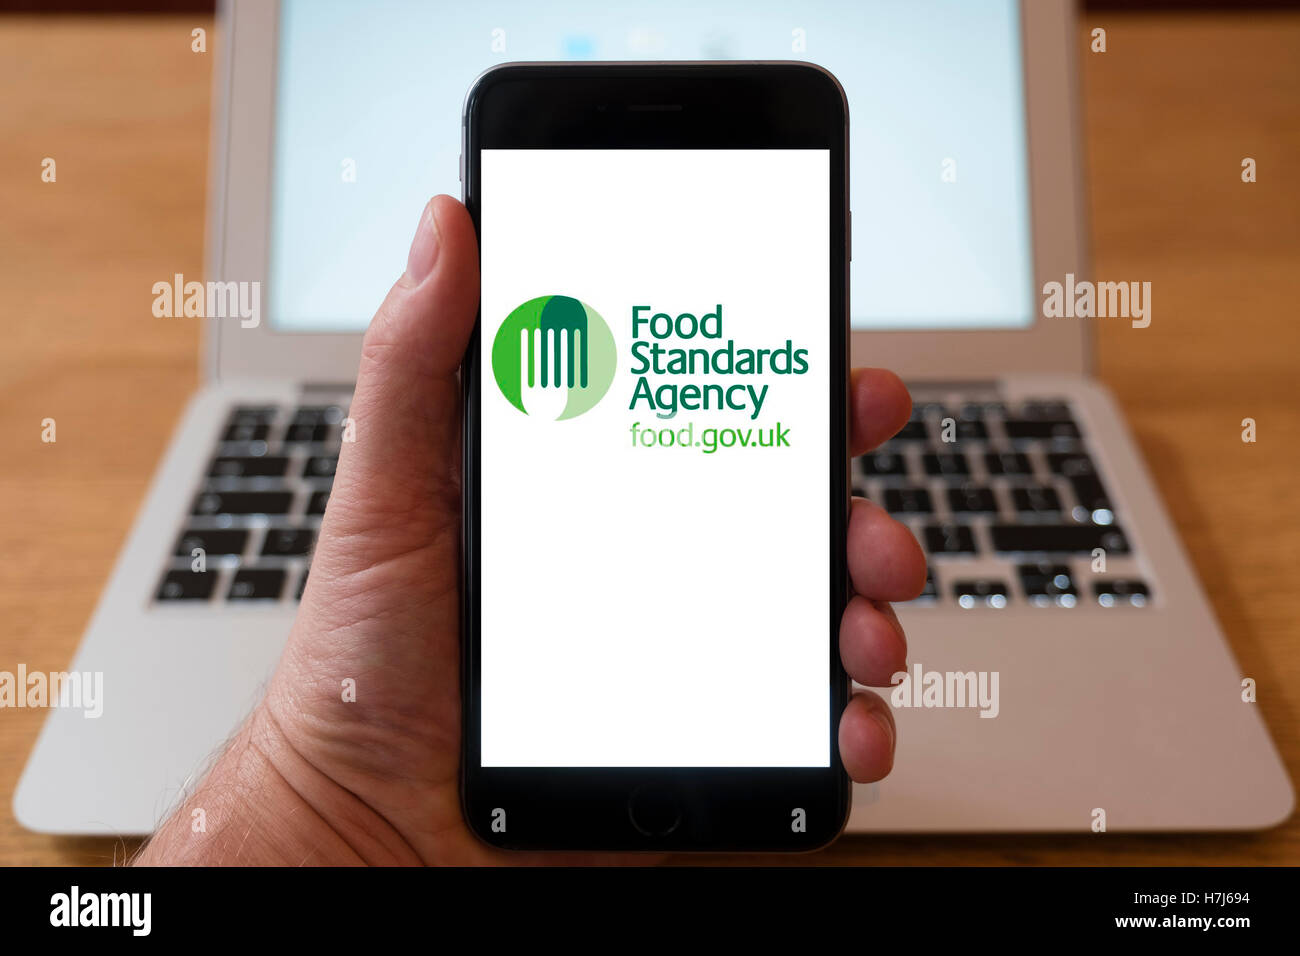 Using iPhone smart phone to display logo of the Food Standards Agency (FSA) - Stock Image